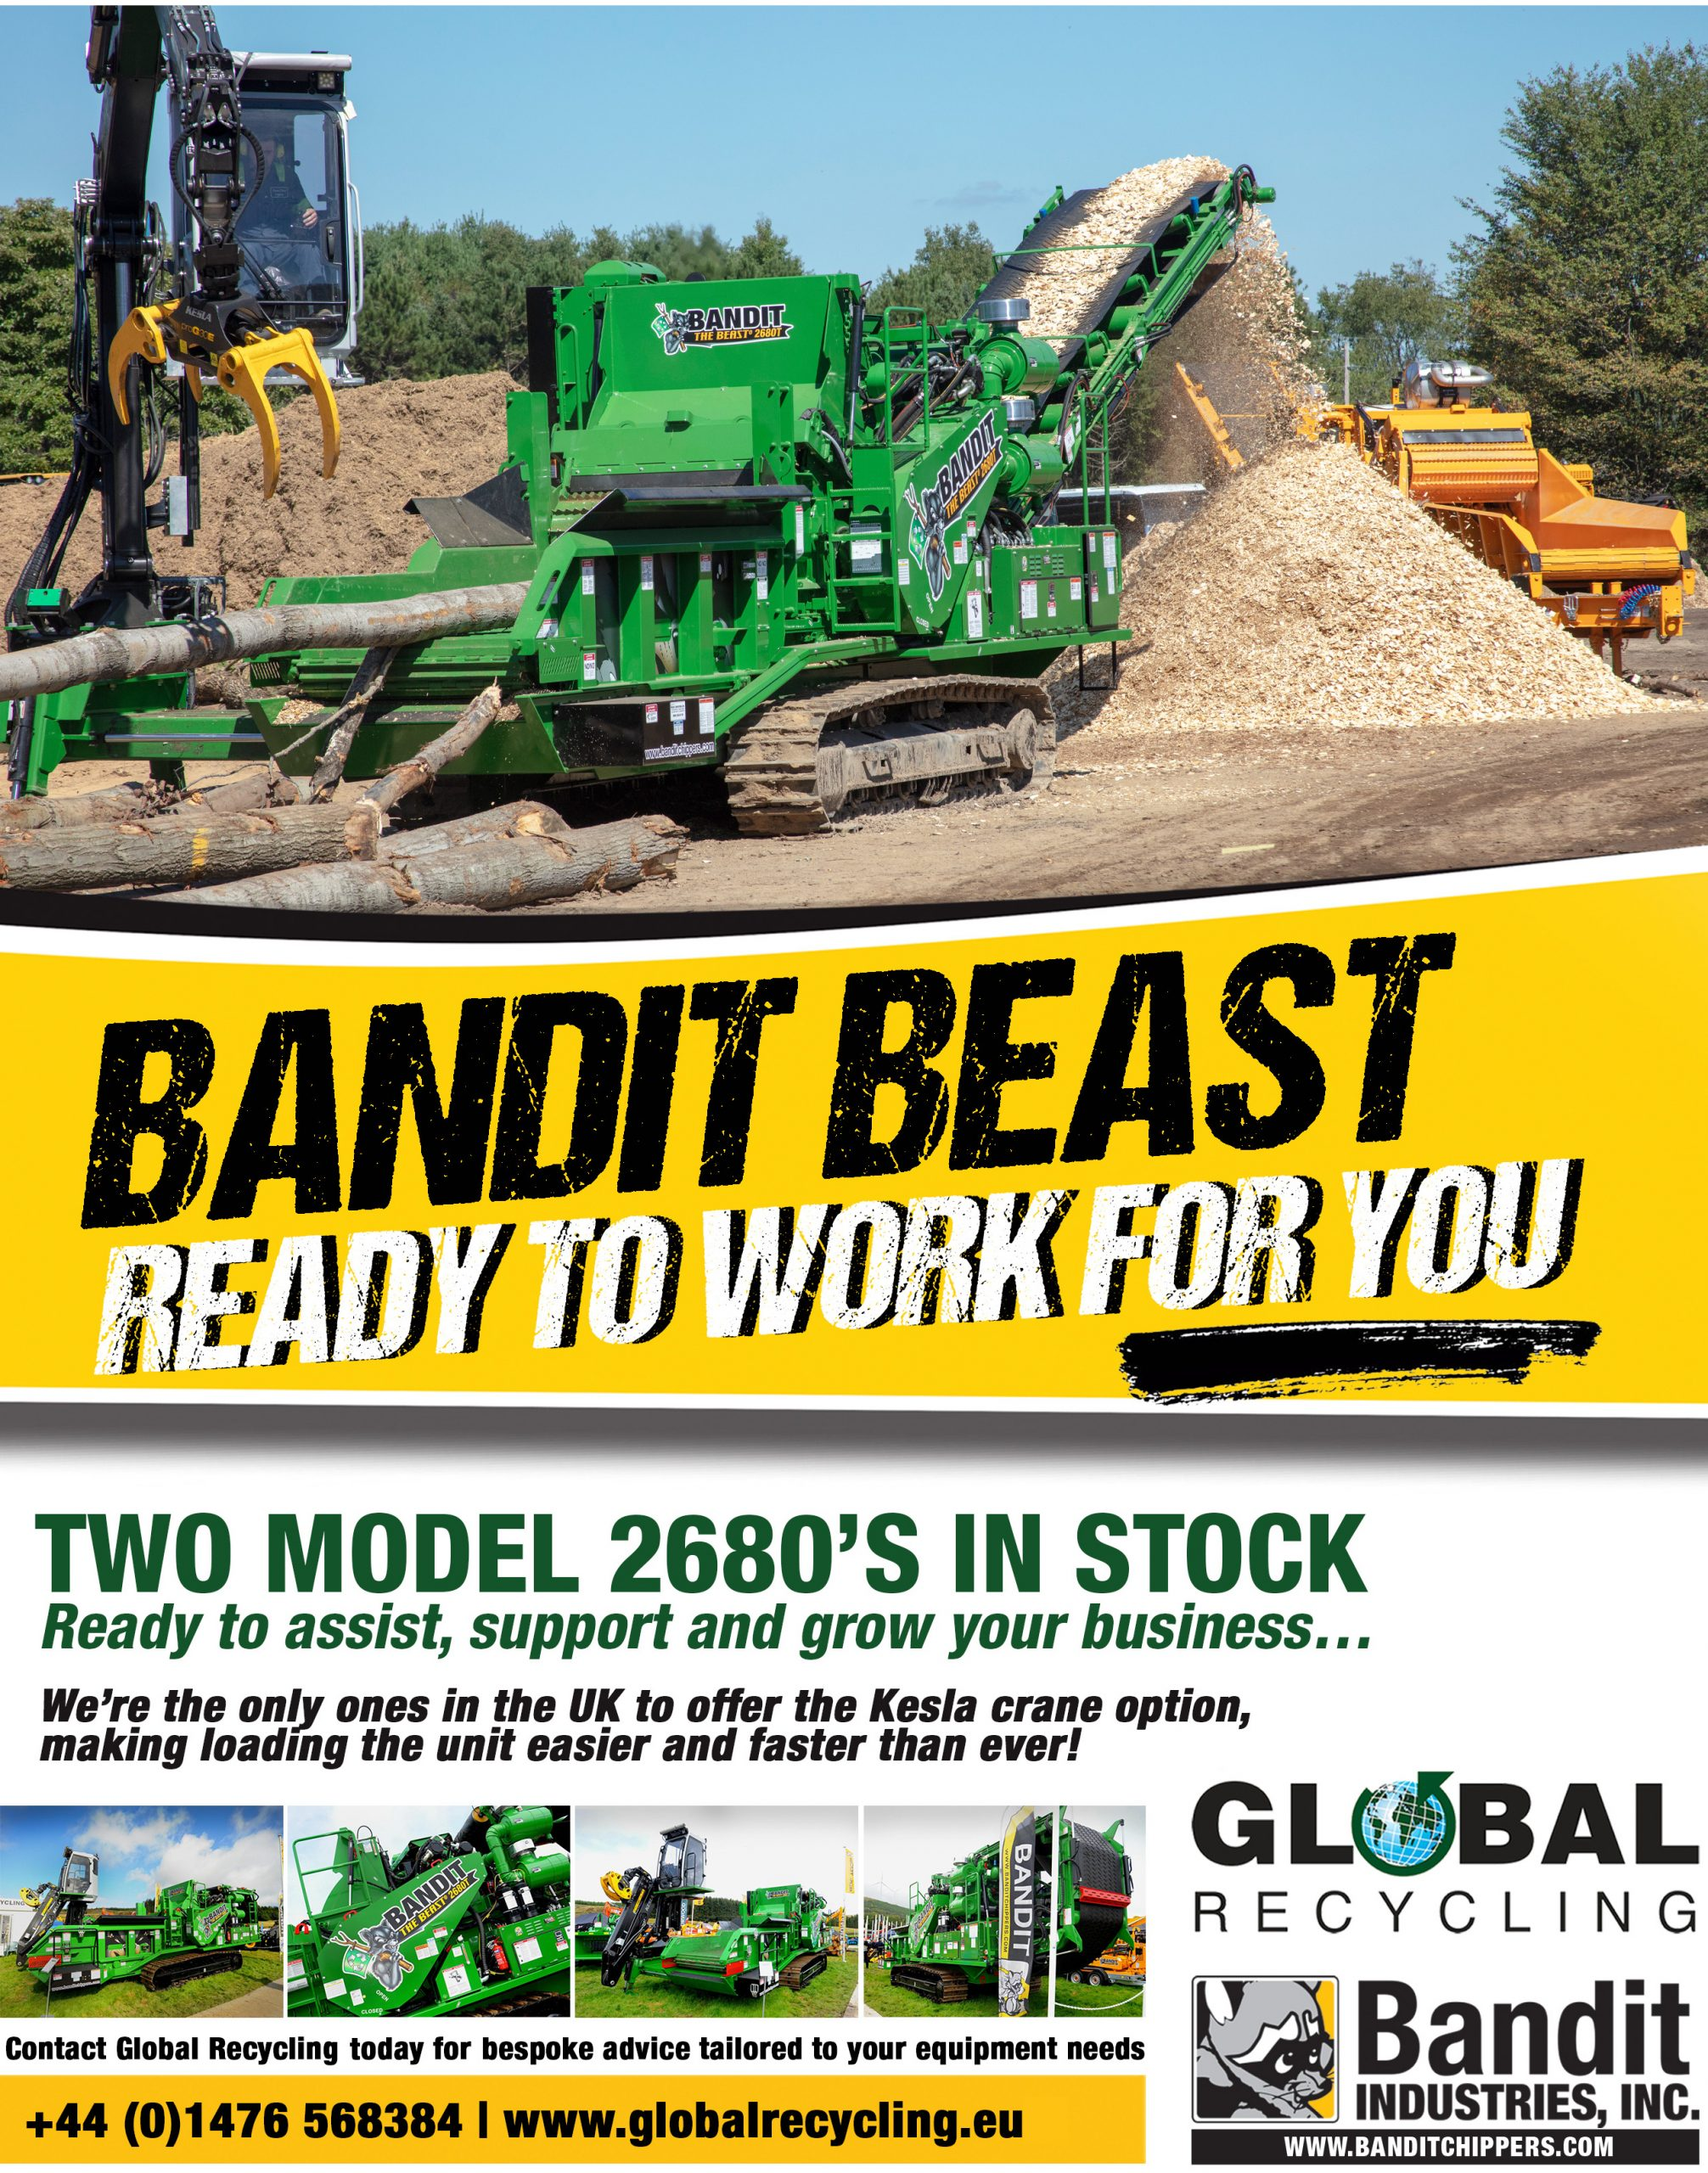 Bandit Beast – ready to work for YOU!